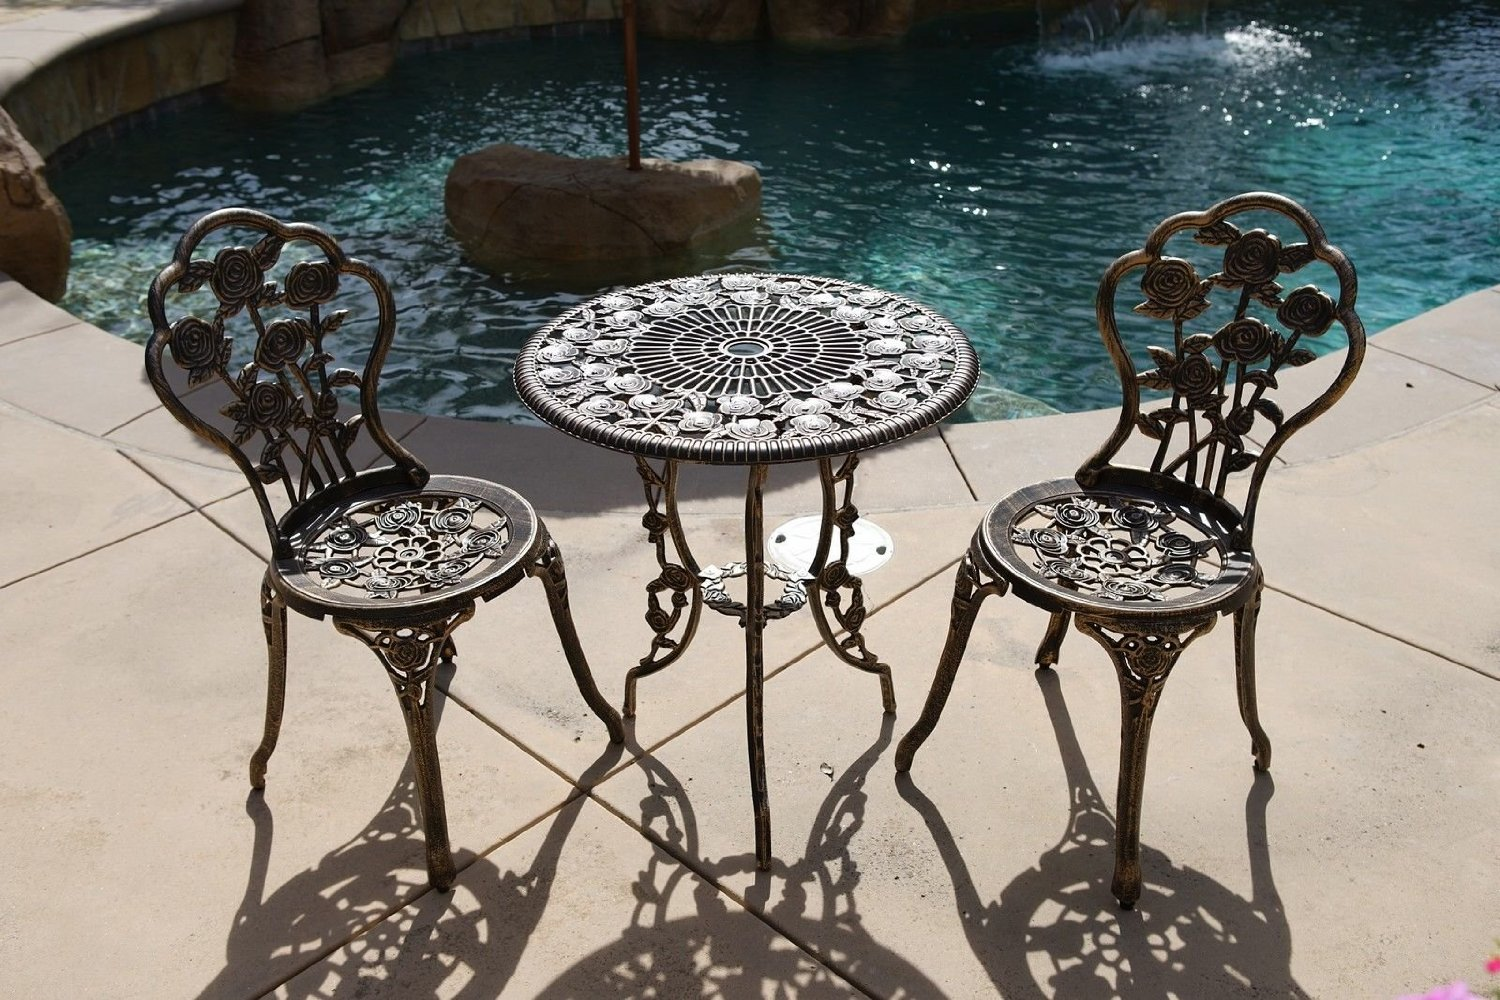 BISTRO SET OUTDOOR PATIO FURNITURE 3 PIECE ROSE PATTERN BROWN ANTIQUE BRONZE FINISH CAST IRON & ALUMINUM